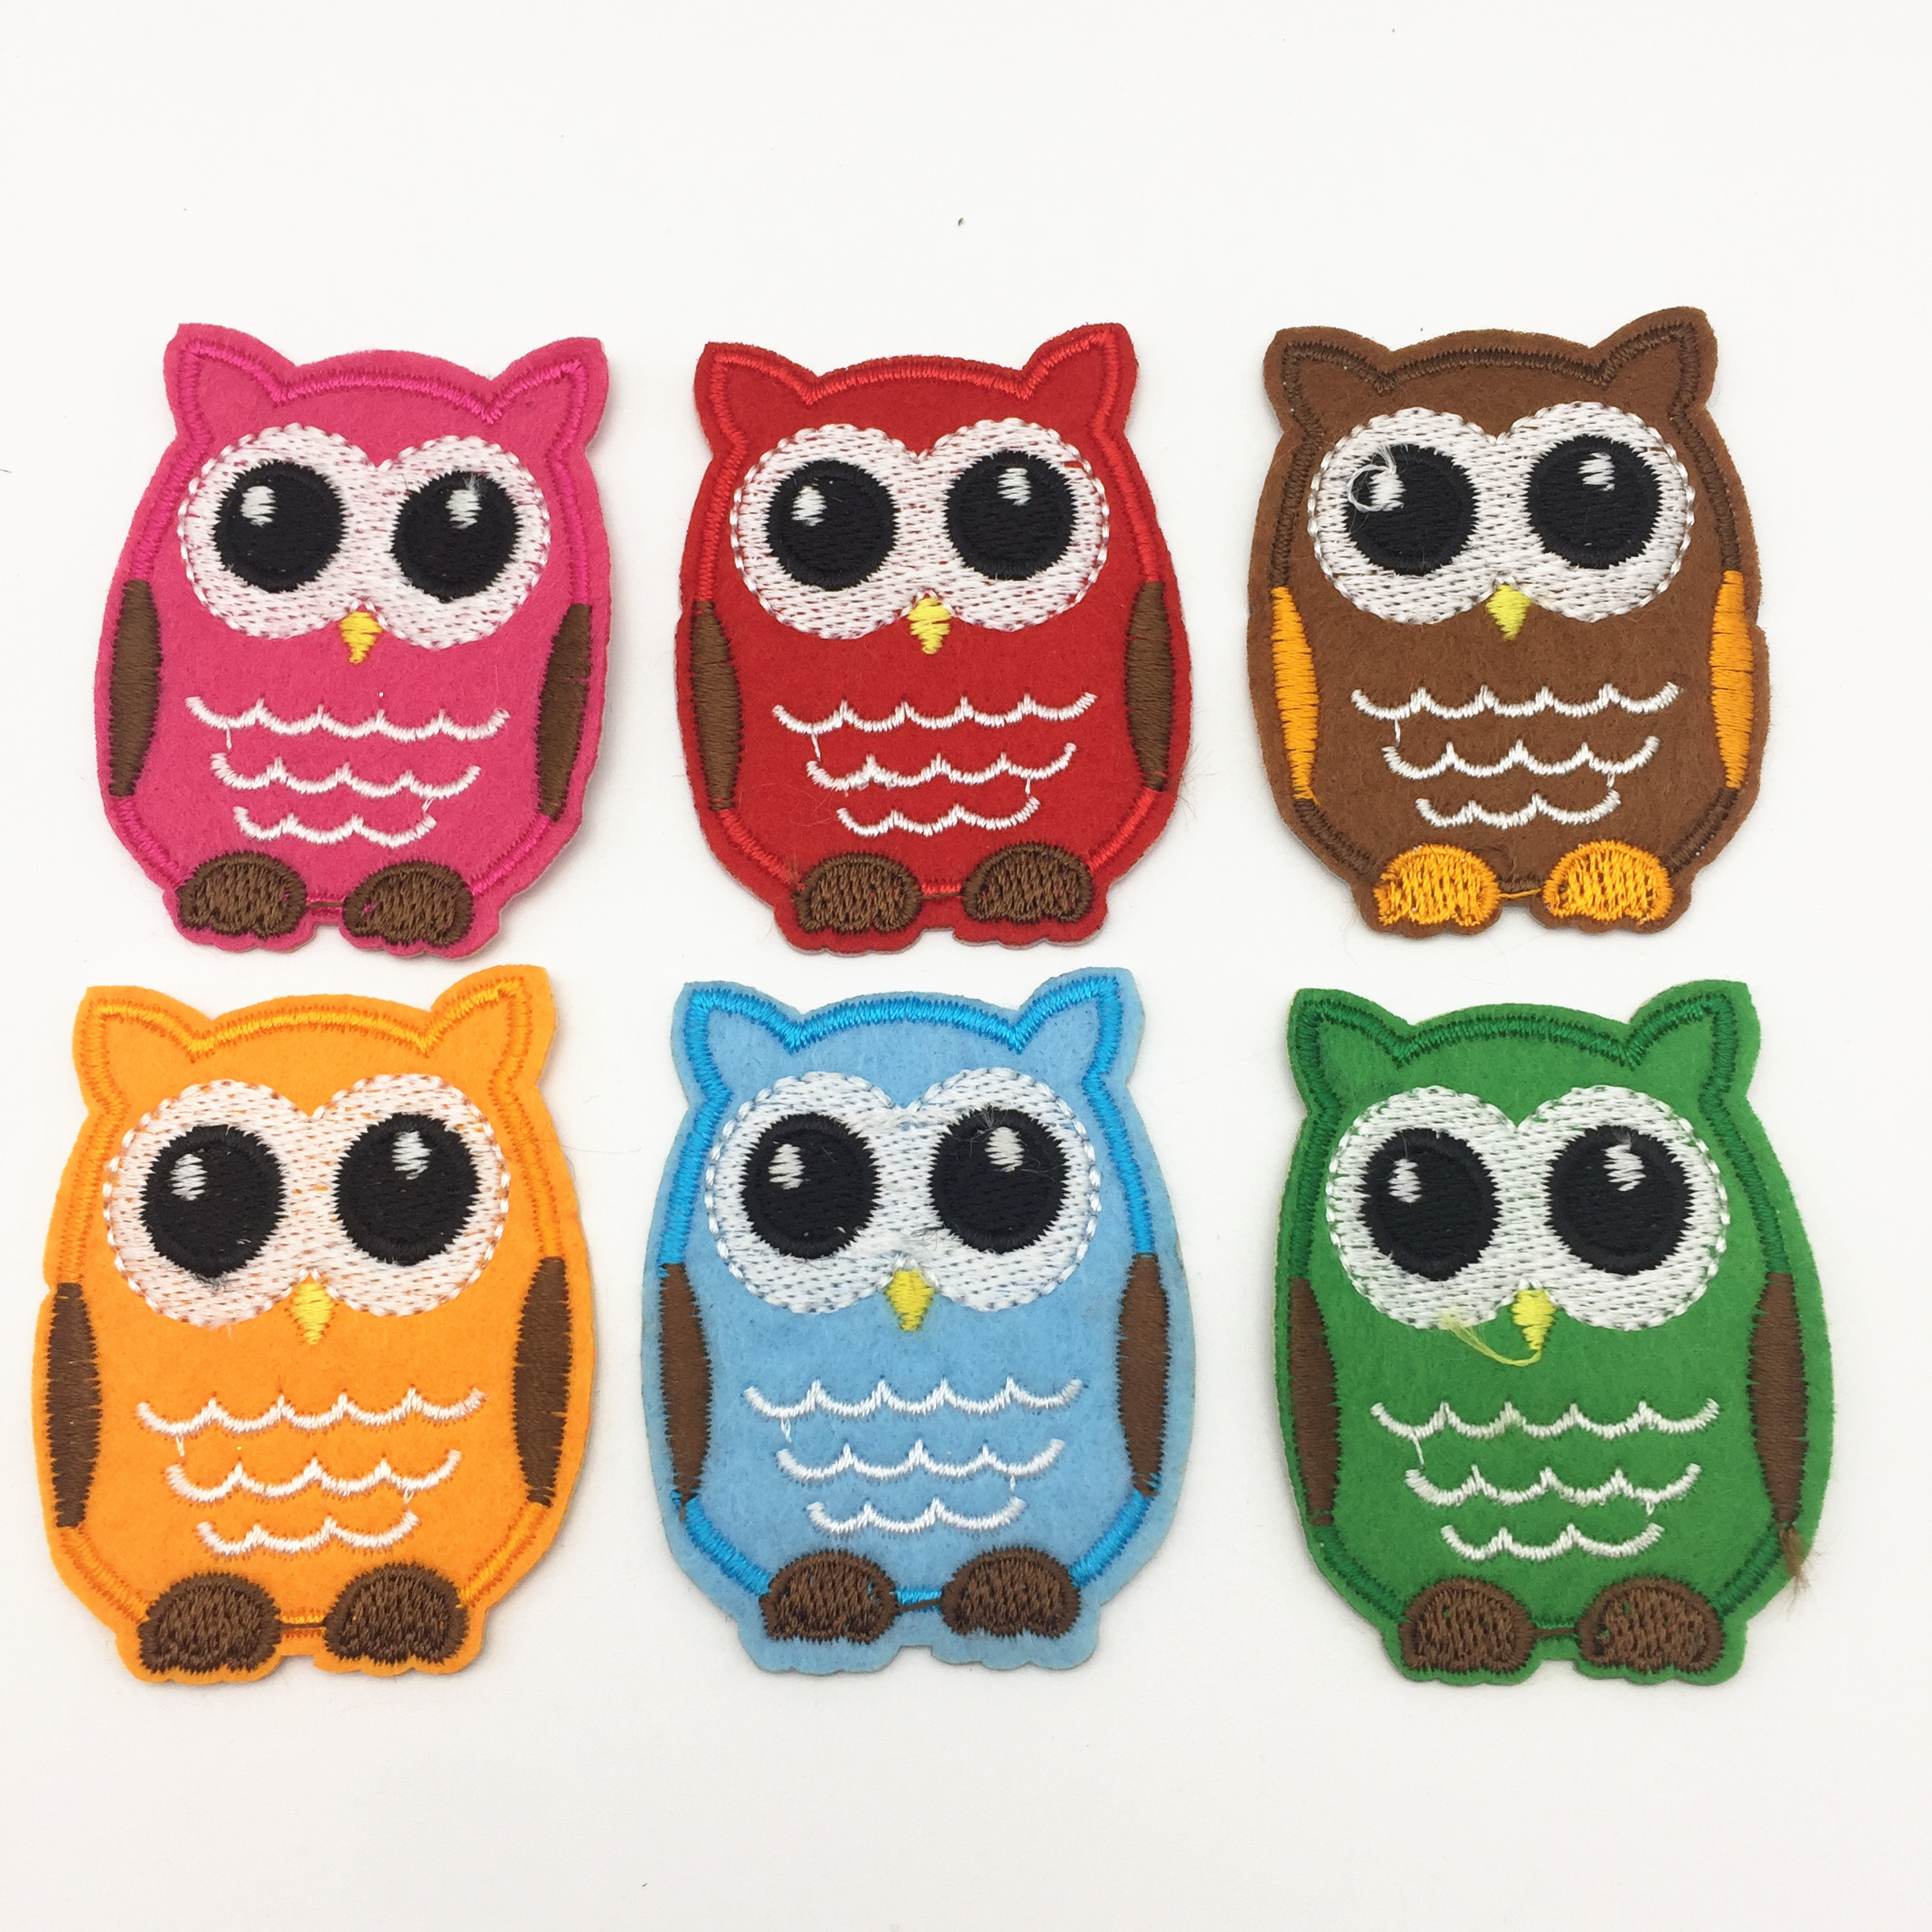 Owl Iron On Patch Sew On Bird Animal Embroidered Badge Craft Embroidery Applique